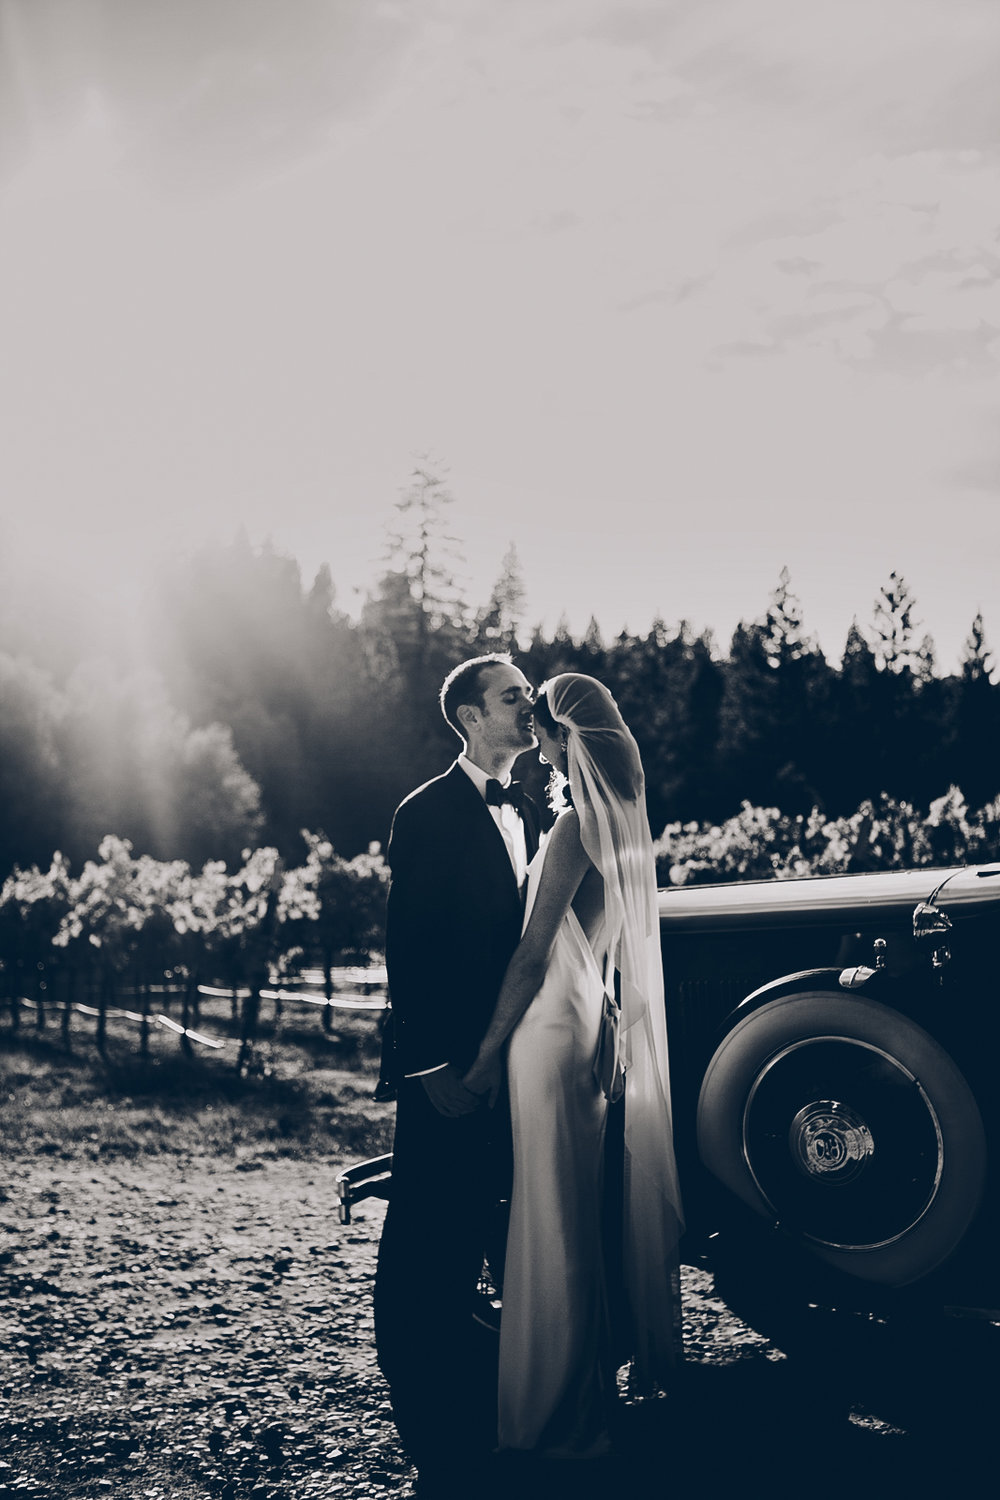 miraflores_winery_wedding_photography_ian_melissa_ebony_siovhan_bokeh_photography_47.jpg